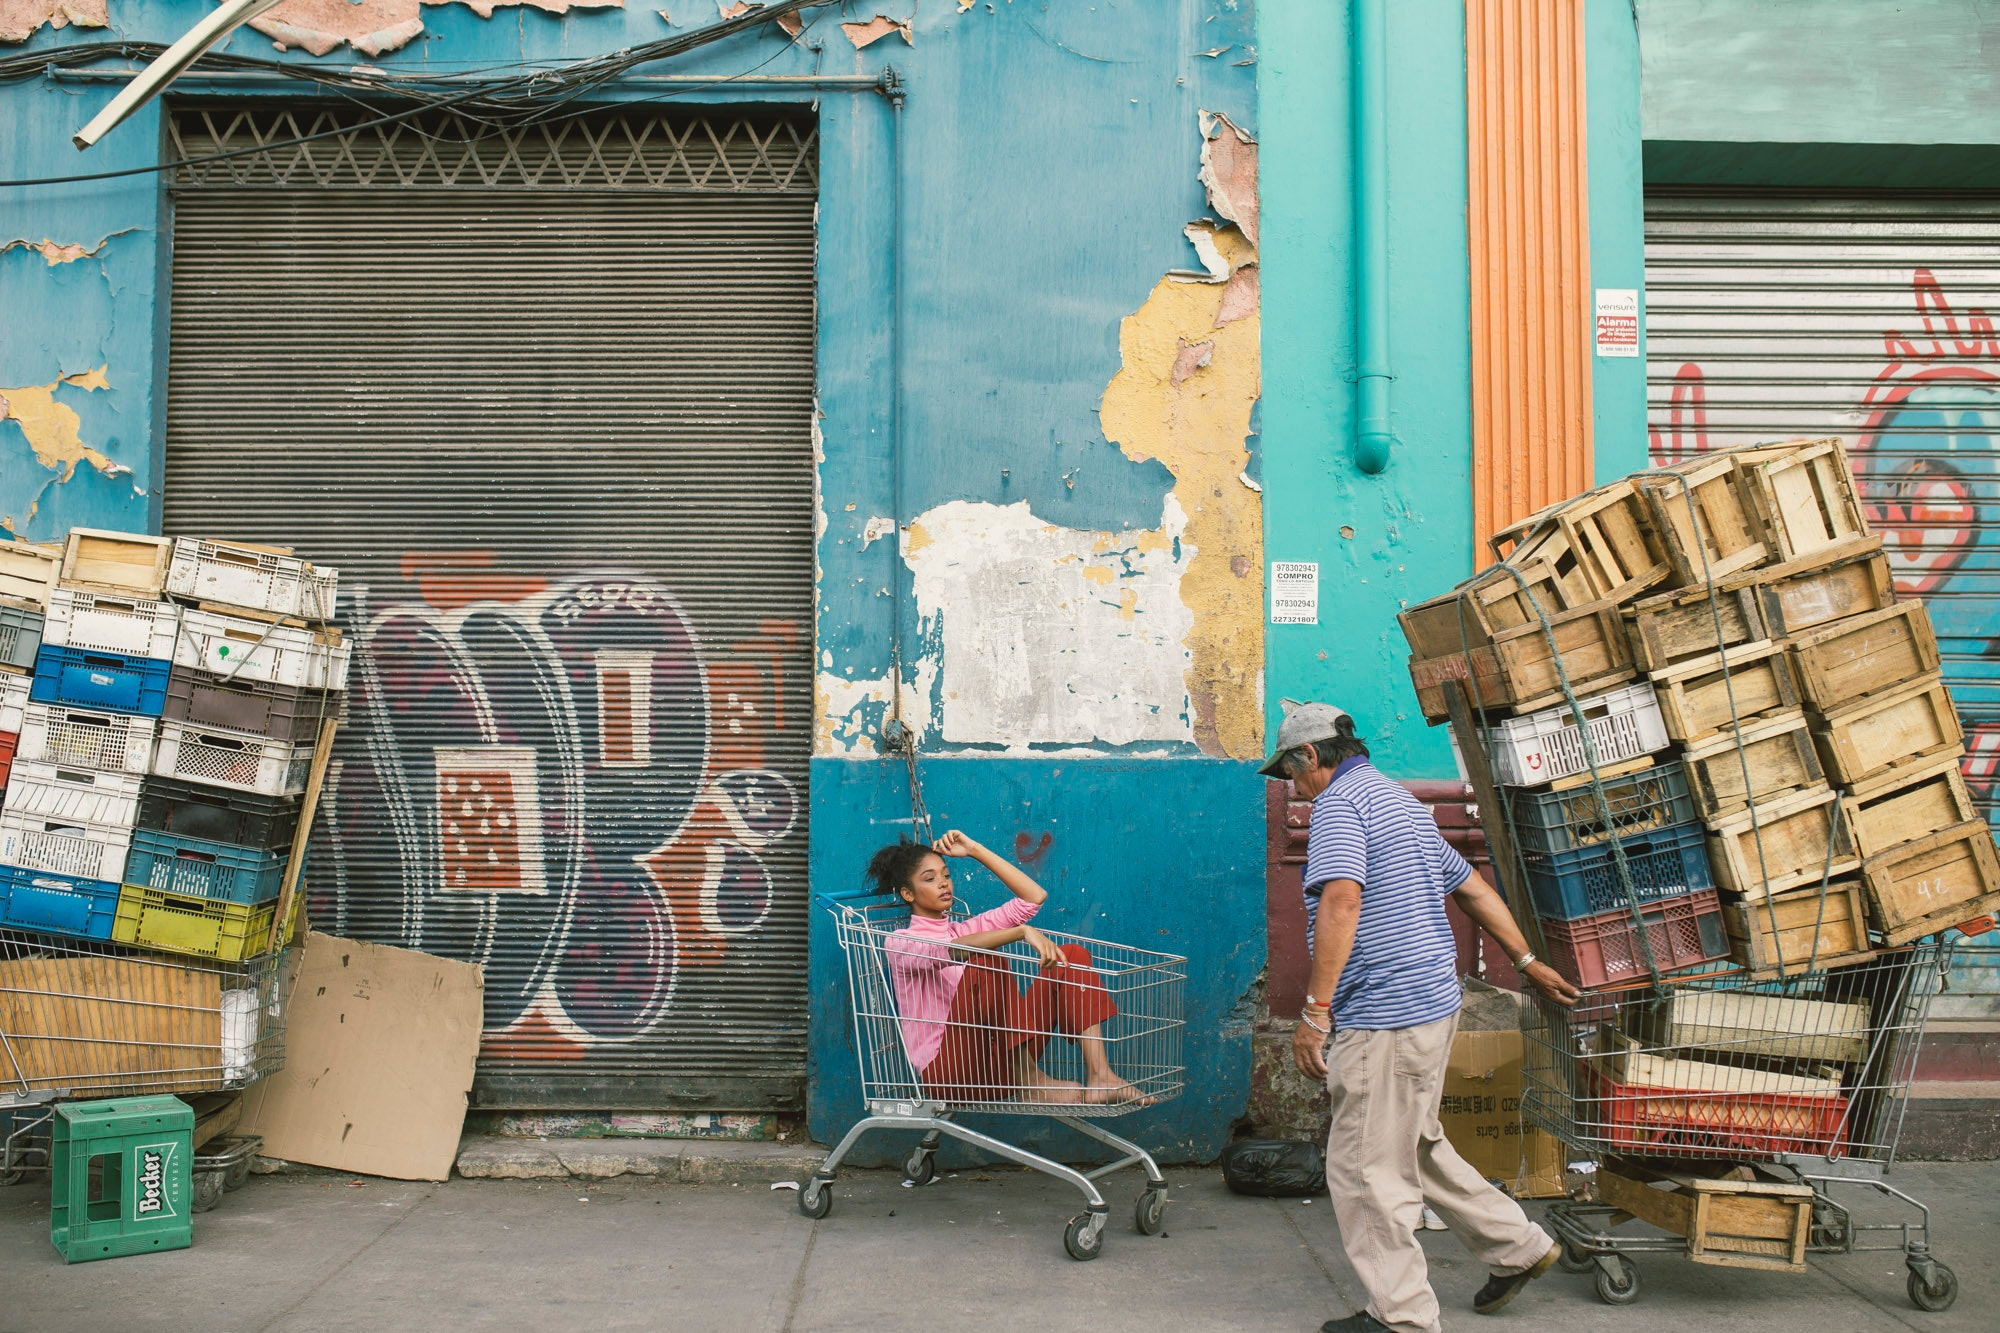 Man Wearing Gray Cap and Blue Shirt Holding Shopping Cart, Messy, Woman, Wall, Urban, HQ Photo